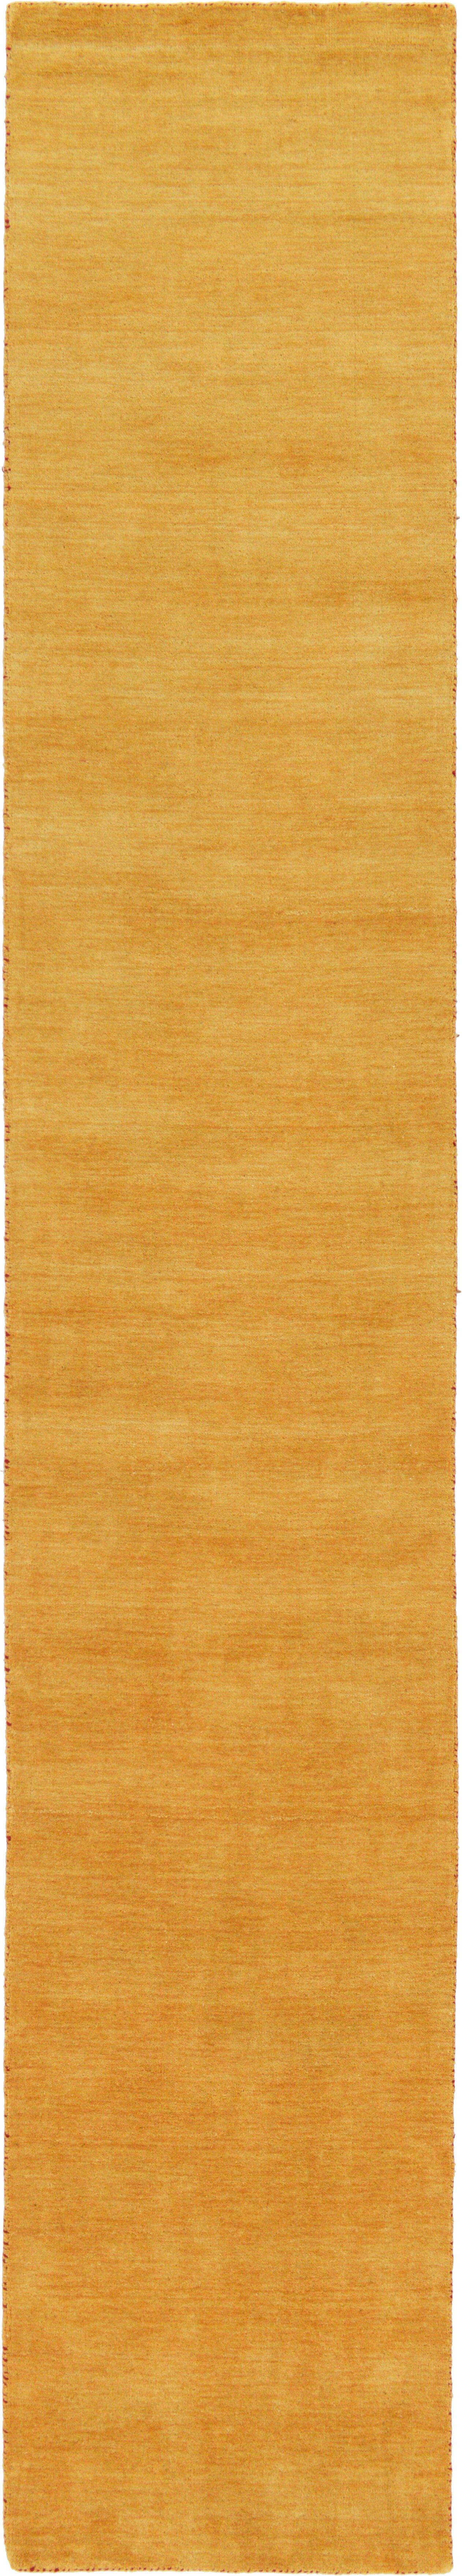 Taul Hand-Knotted Wool Gold Area Rug Rug Size: 2' 7 x 16' 5